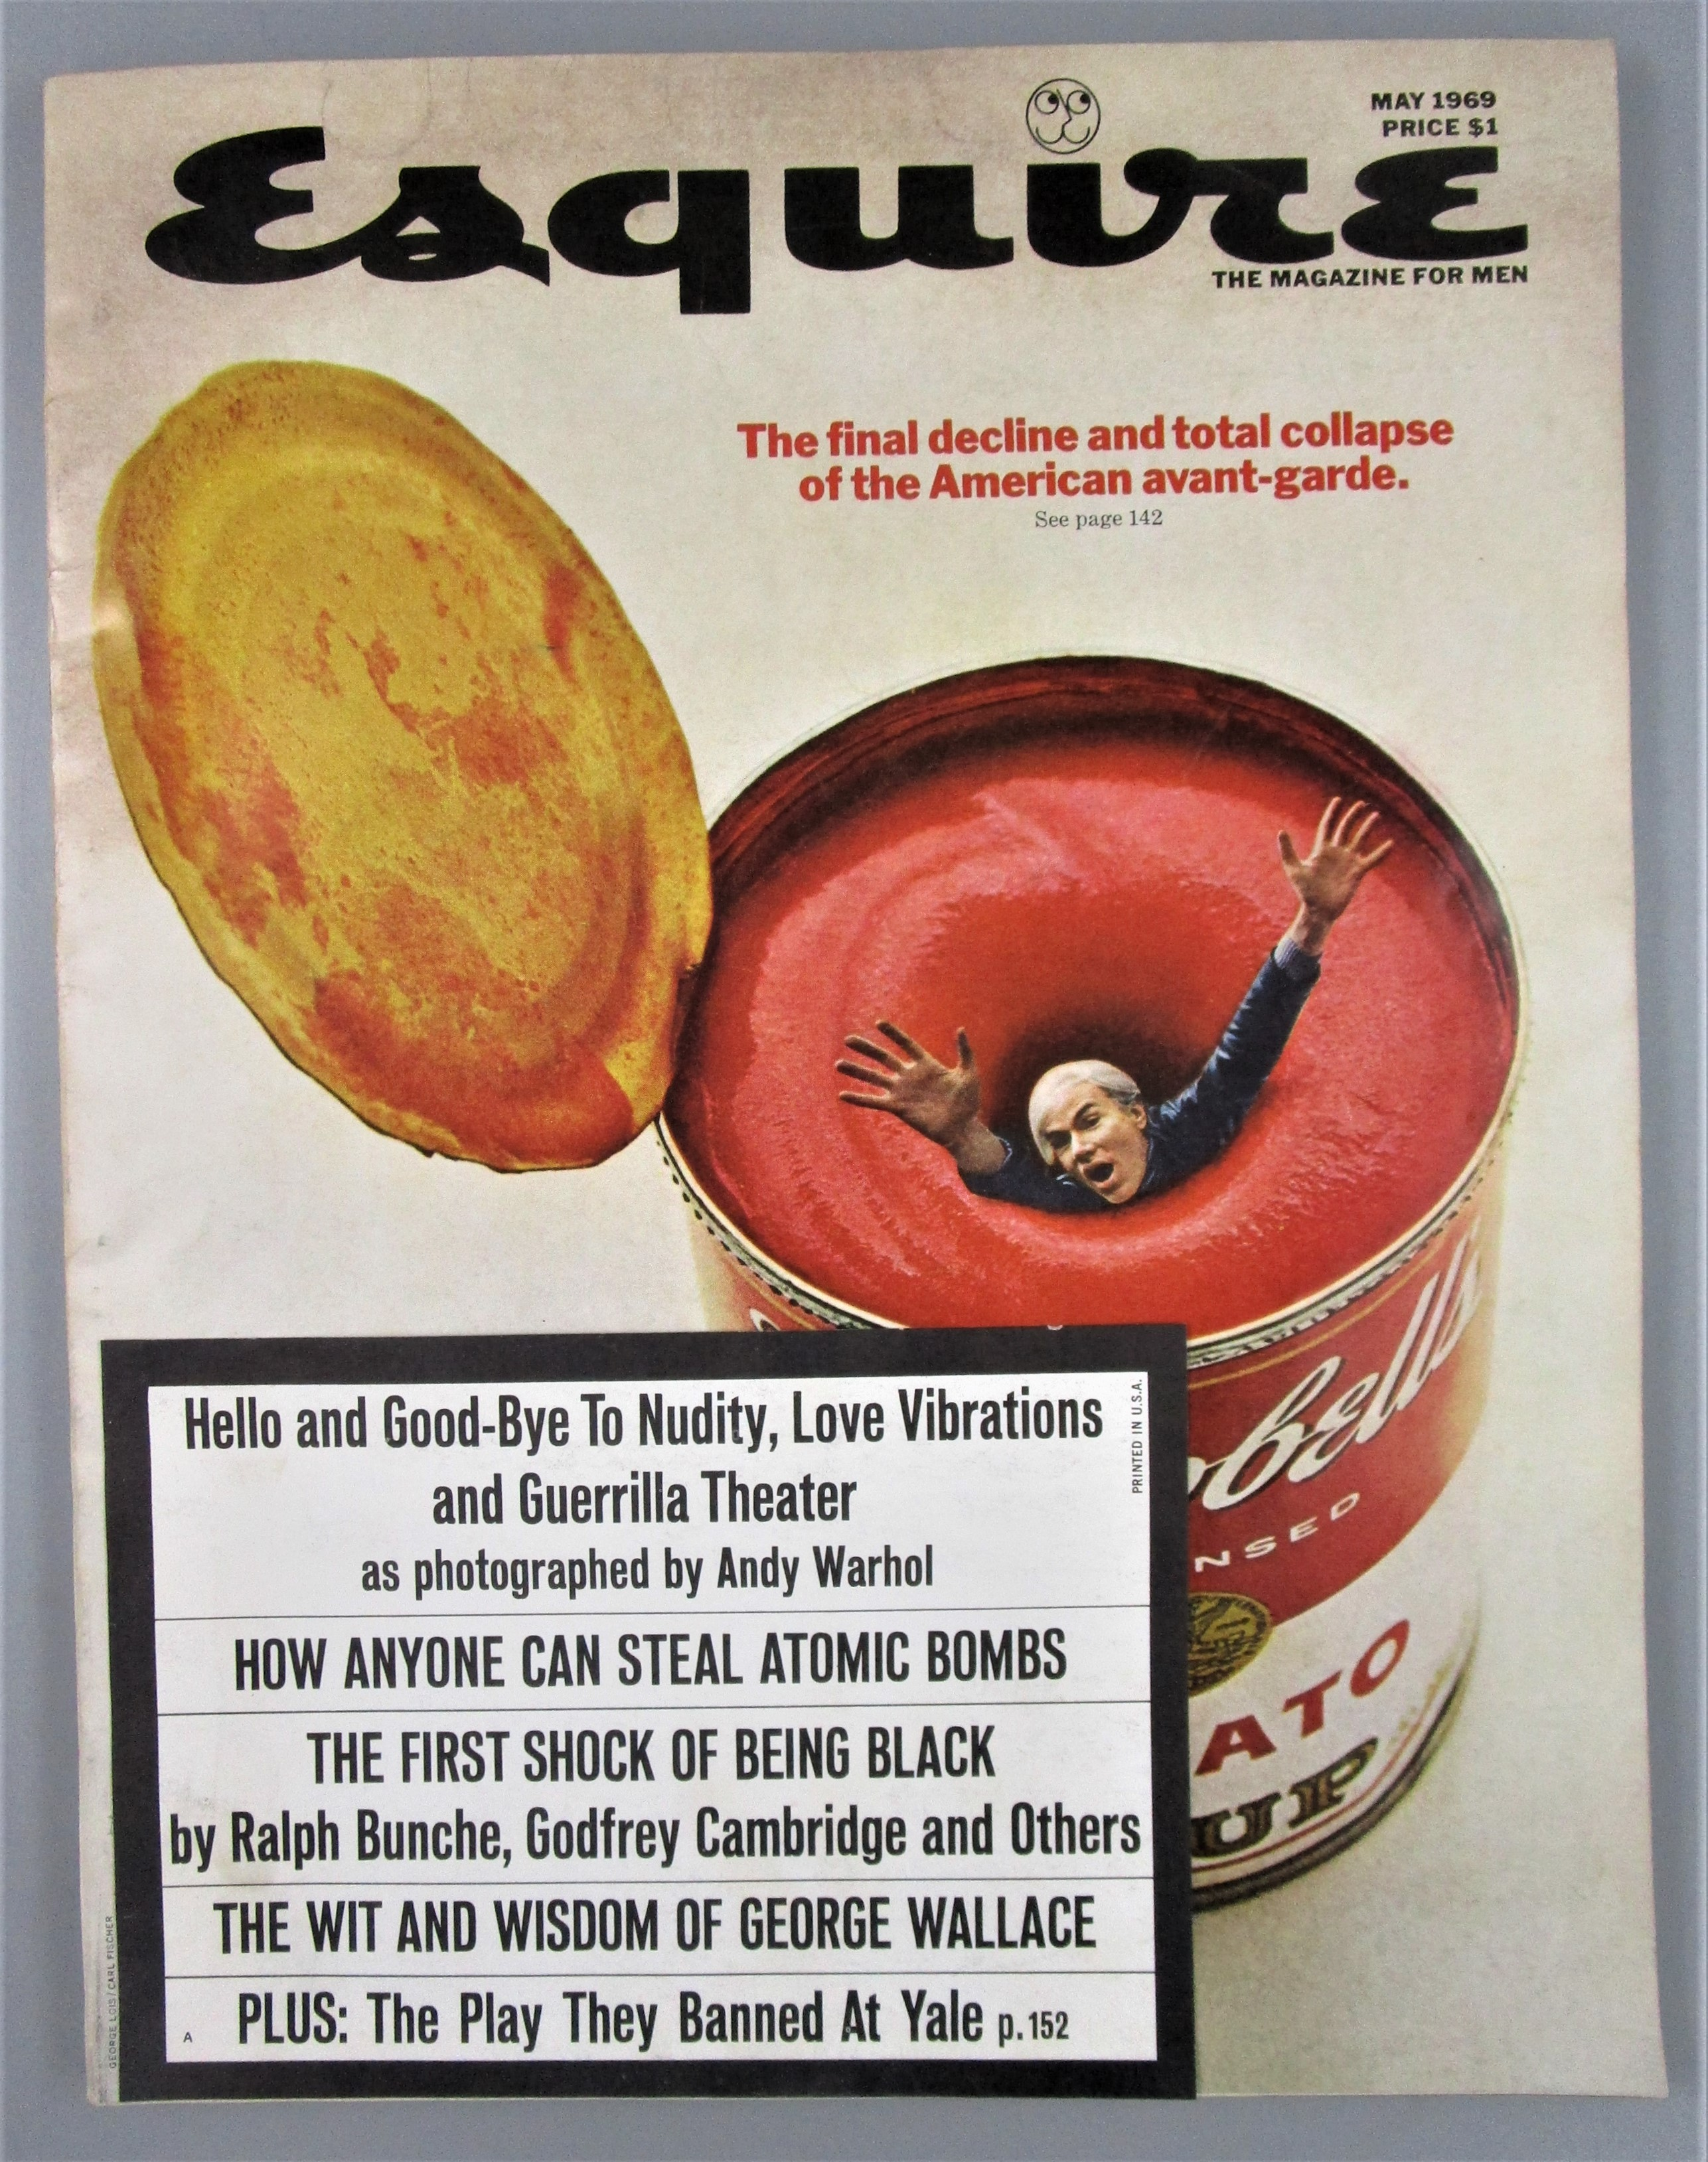 ESQUIRE: THE MAGAZINE FOR MEN - May 1969 [V.71; No.5]